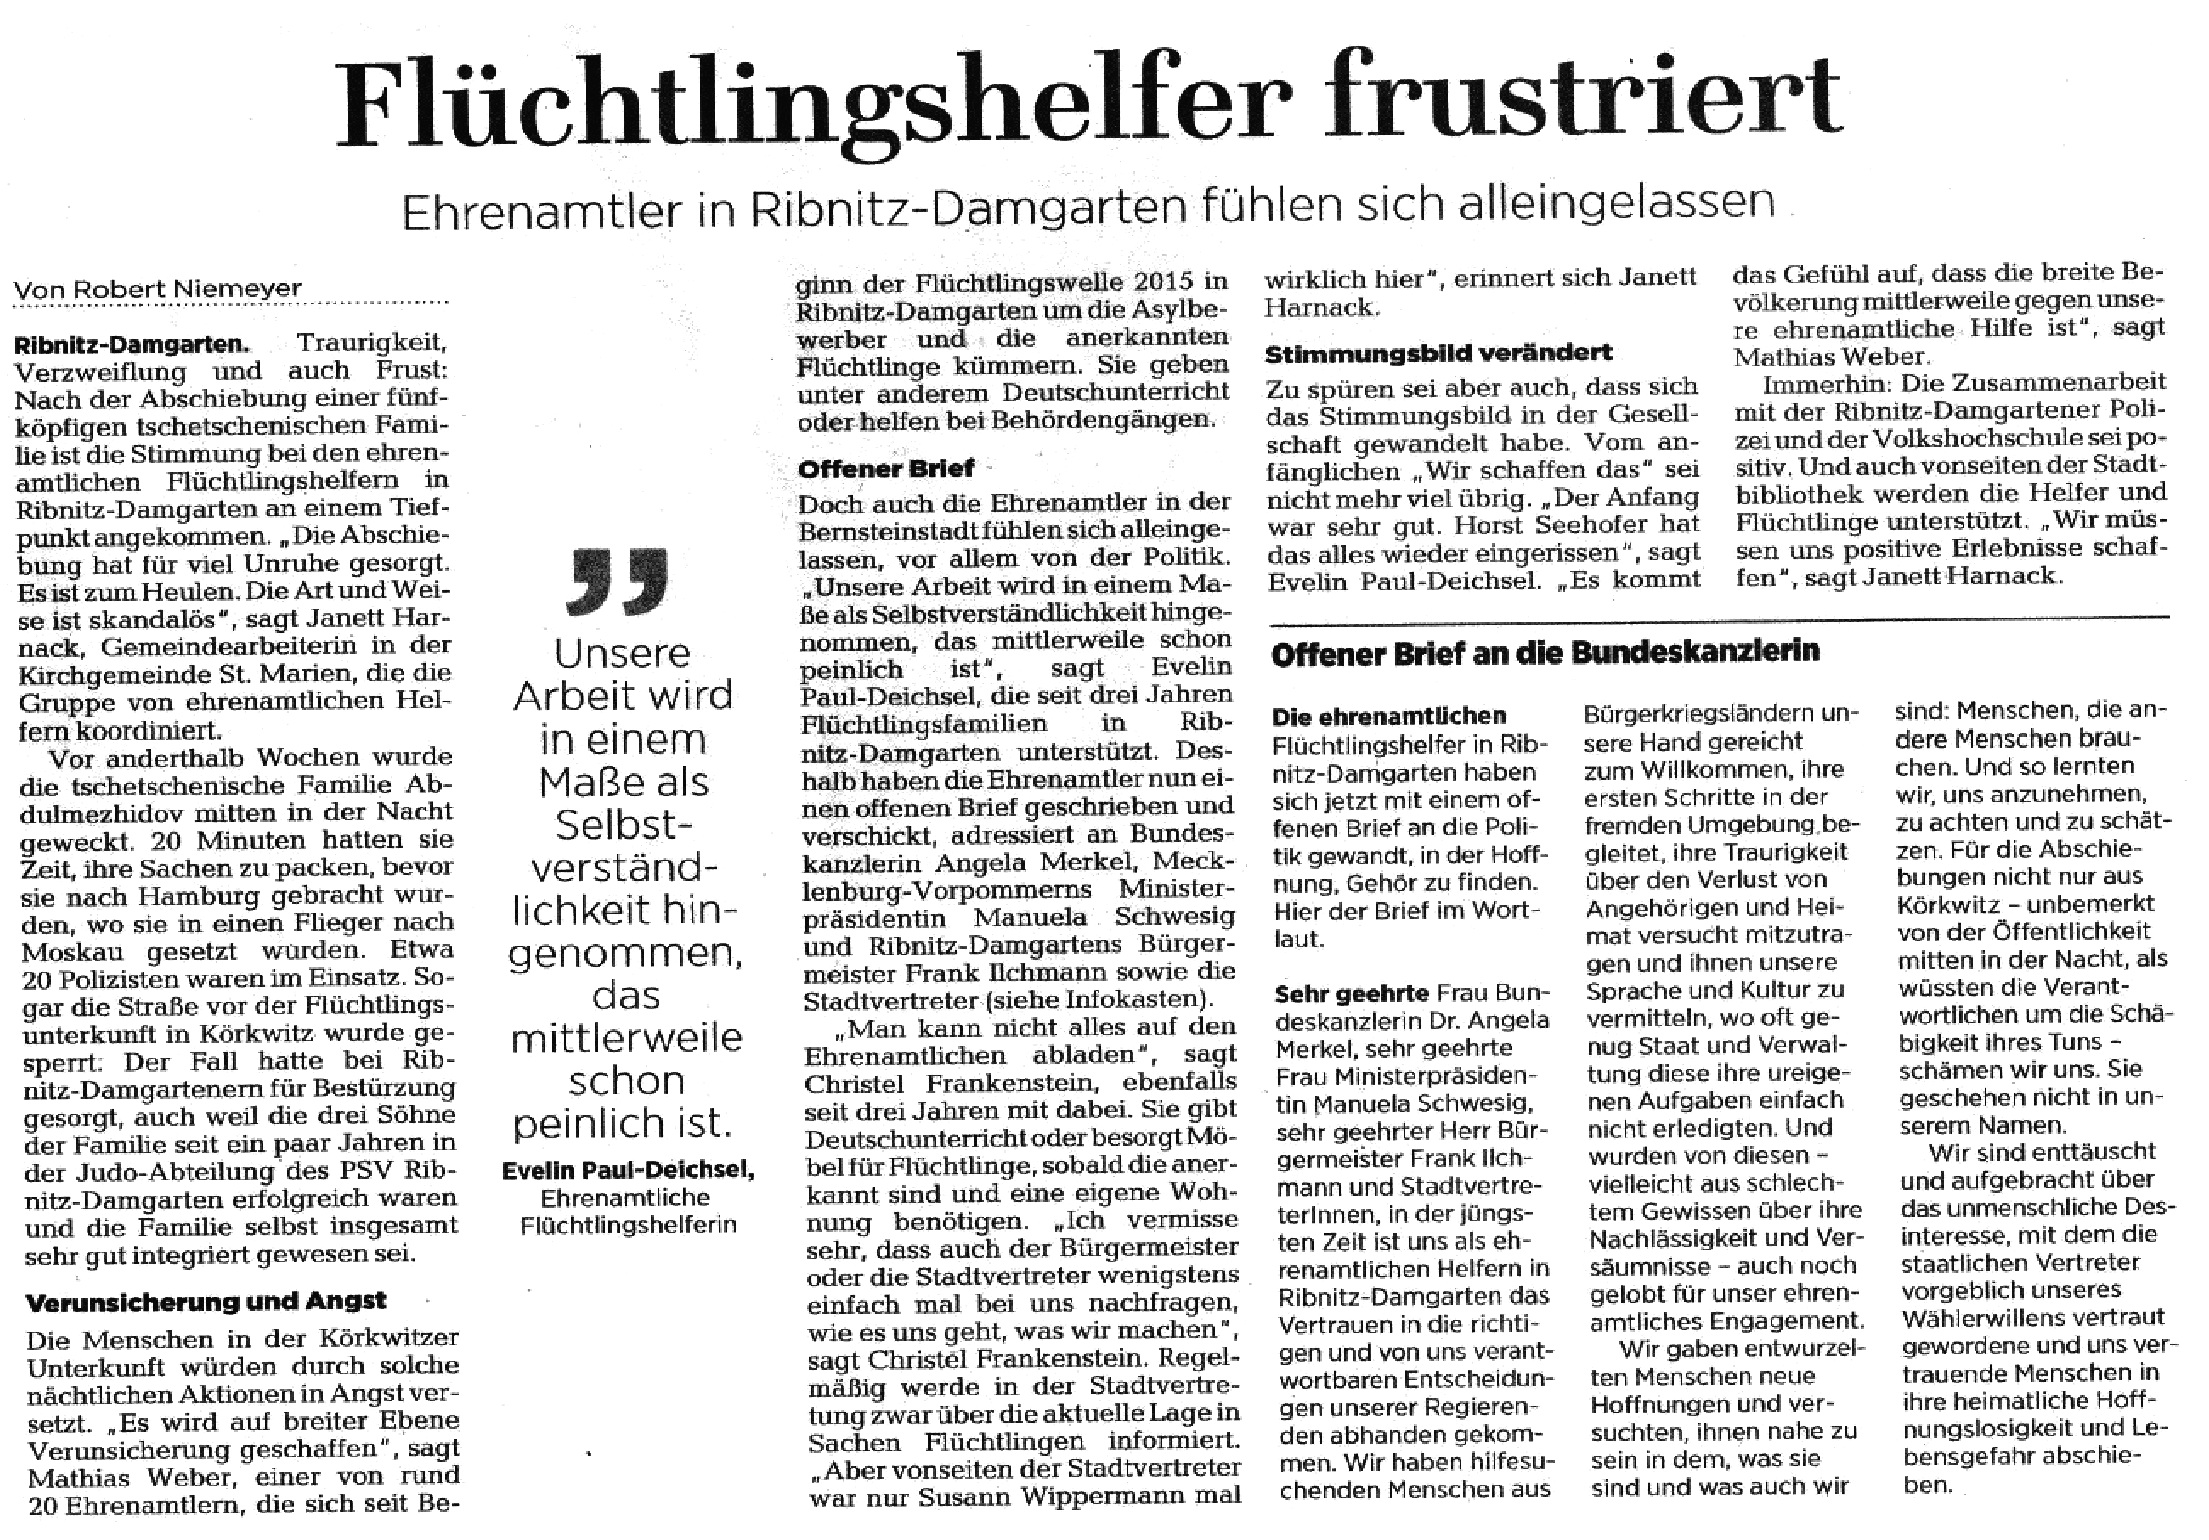 Flüchtlingshelfer frustiert - Ehrenamtler in Ribnitz-Damgarten fühlen sich alleingelassen - Beitrag veröffentlicht in der Ostsee-Zeitung - Ribnitz-Damgartener Ausgabe - Seite 11 - Sonnabend/Sonntag, 18./19. August 2018